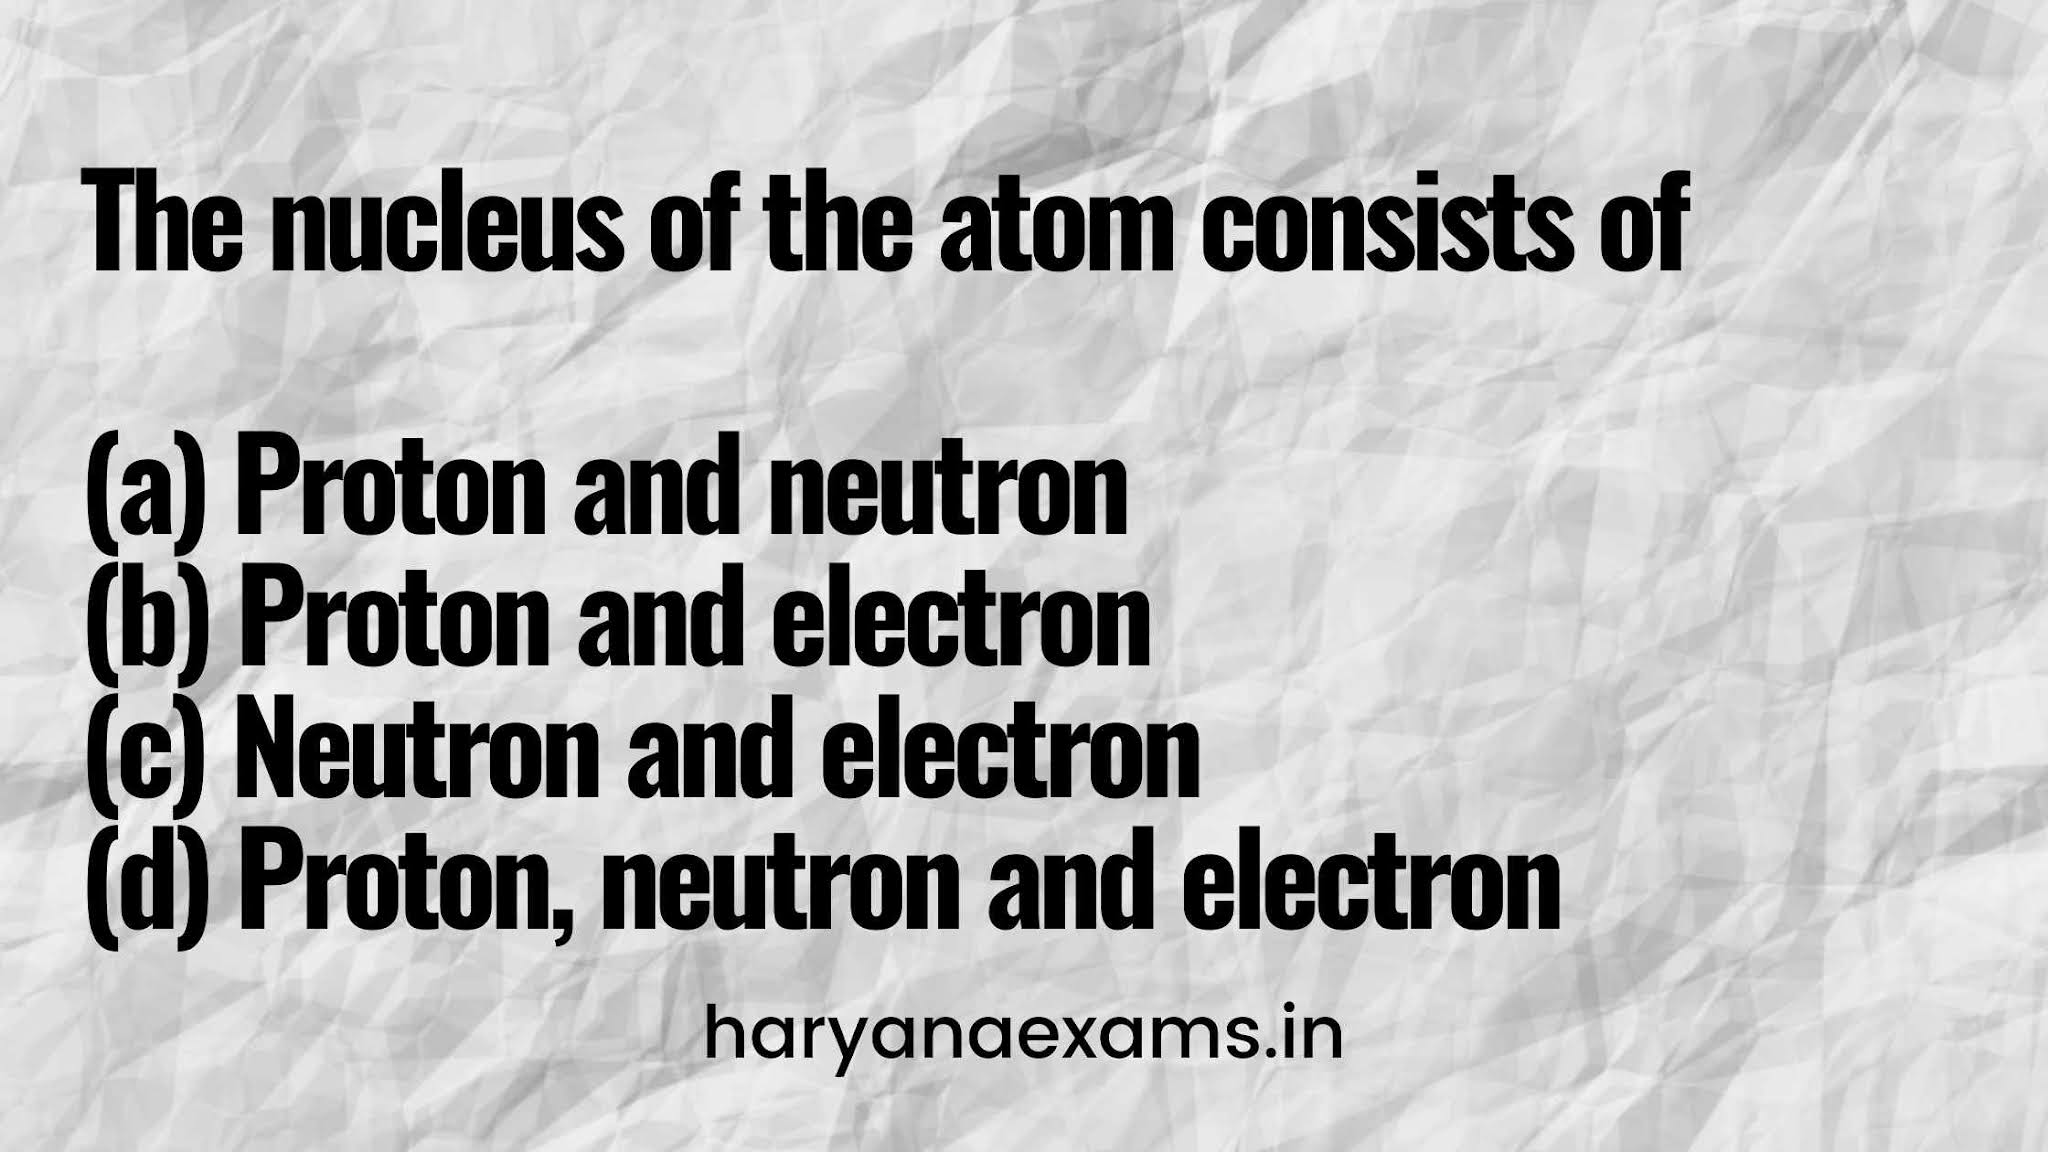 The nucleus of the atom consists of  (a) Proton and neutron  (b) Proton and electron  (c) Neutron and electron  (d) Proton, neutron and electron